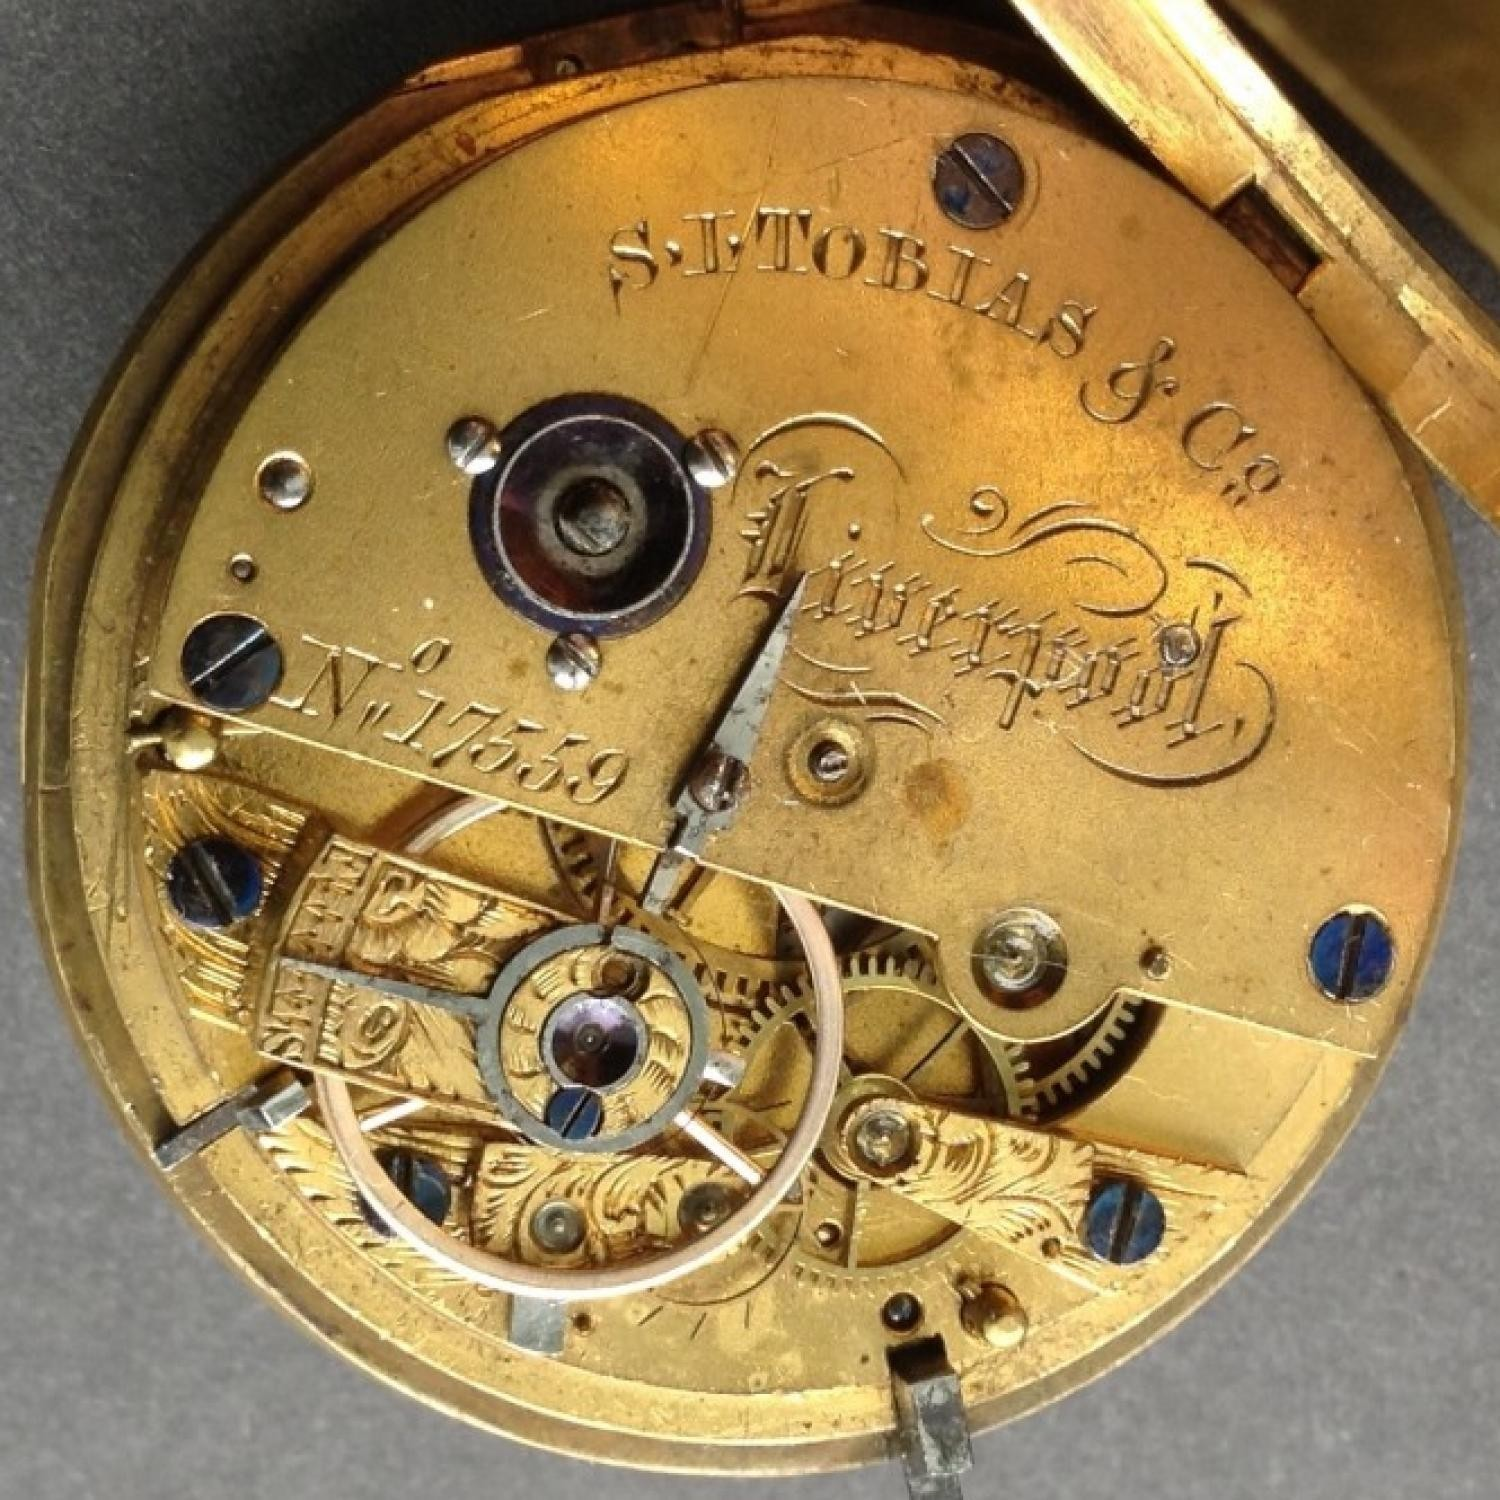 Image of Other S.I. TOBIAS & Co. #17559 Movement